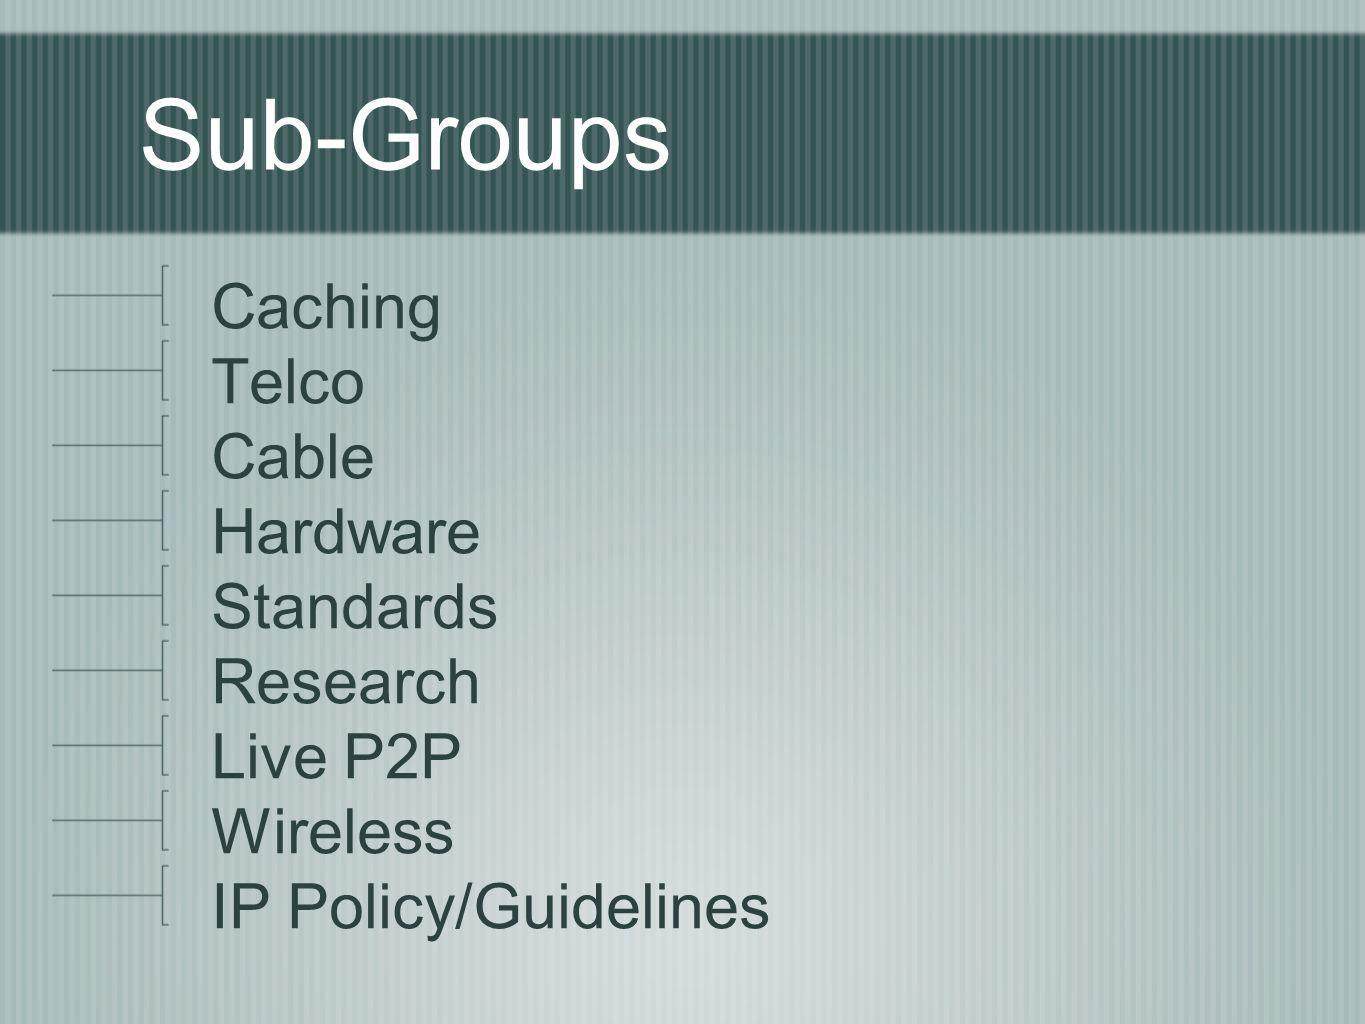 Sub-Groups Caching Telco Cable Hardware Standards Research Live P2P